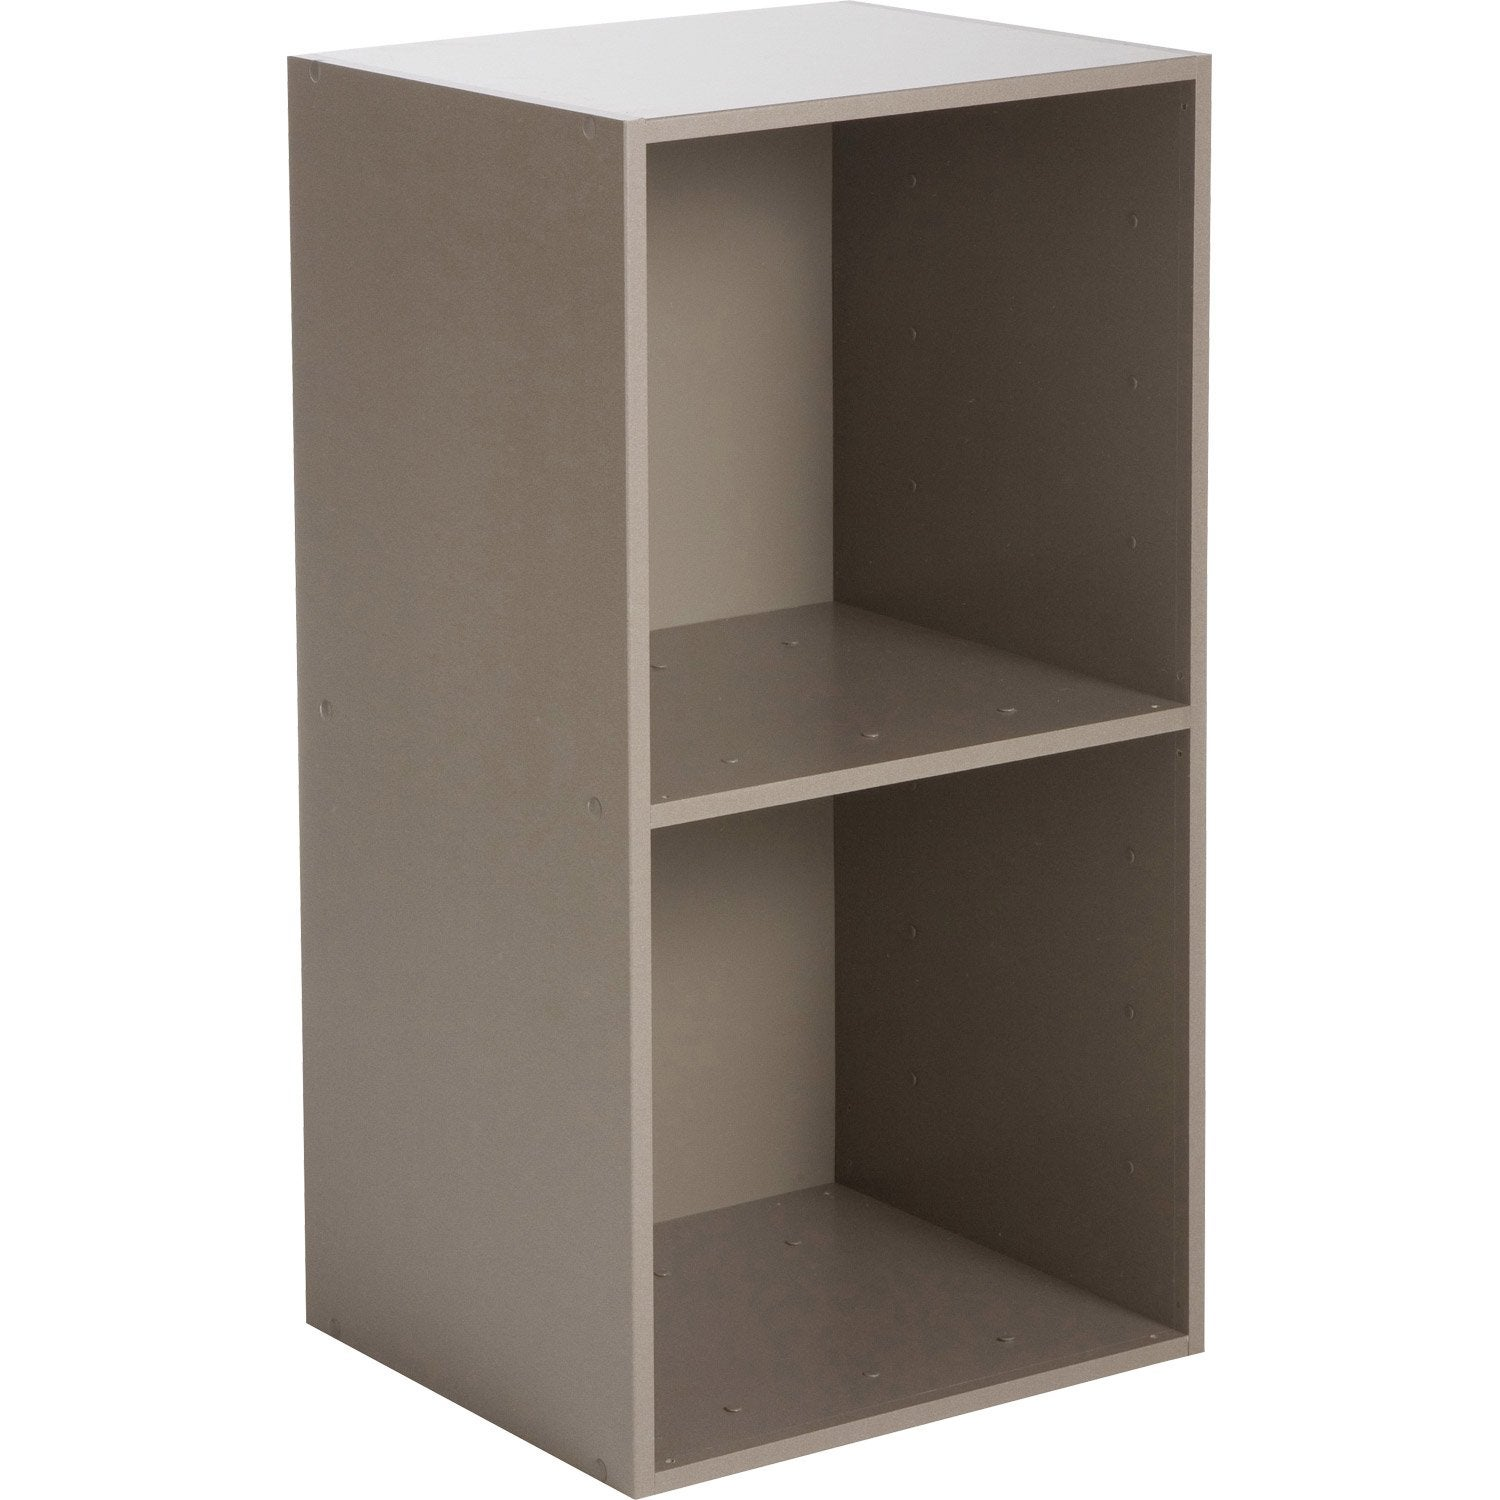 Etag re 2 cases multikaz taupe x x - Etagere a chaussure leroy merlin ...